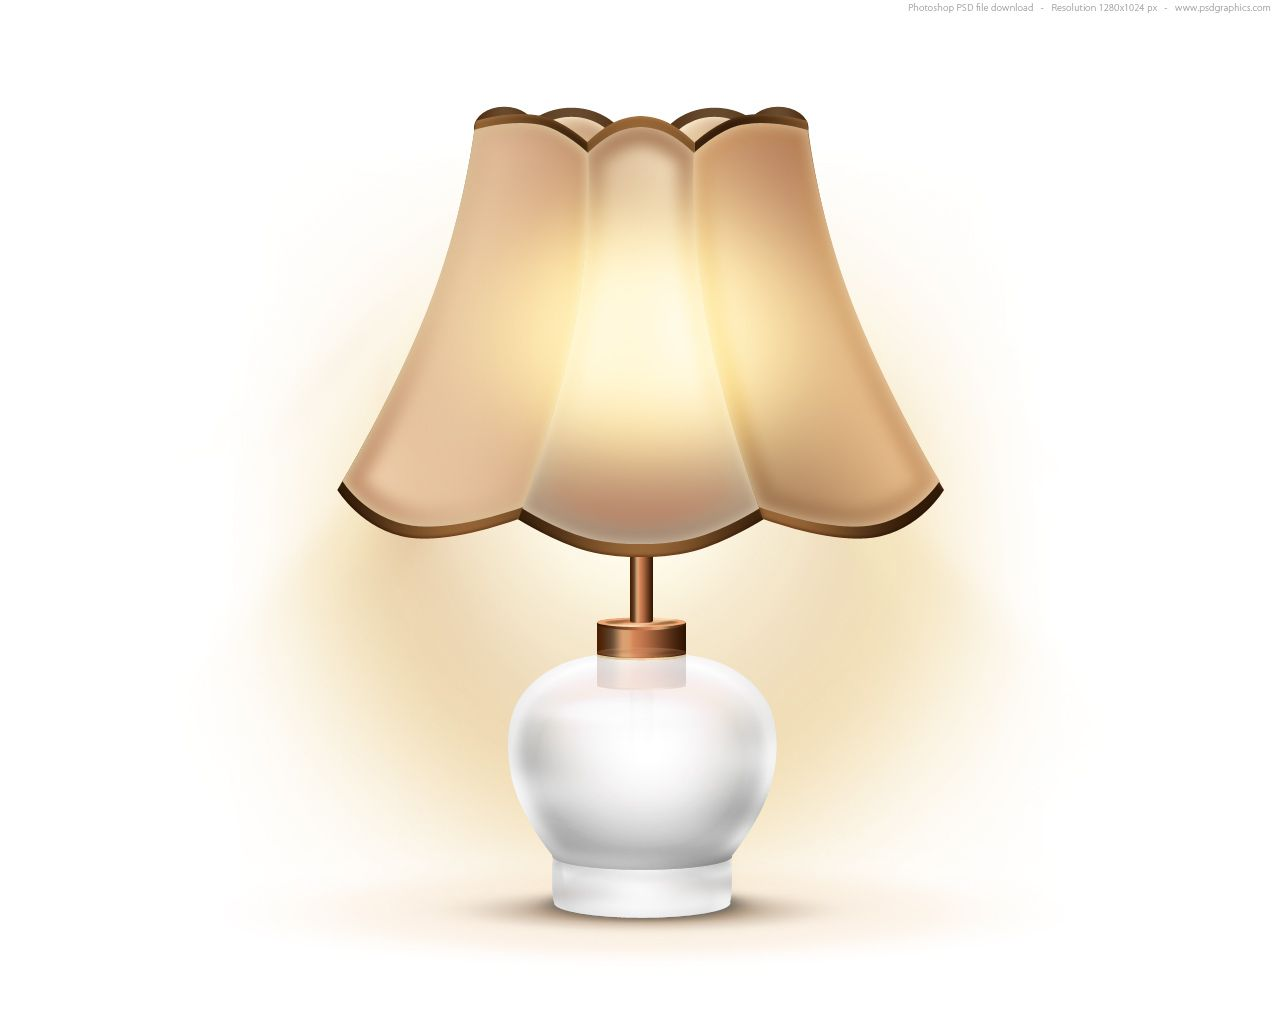 Jcpenney Lamp Shades Magnificent Oldtablelamps  Home Decor  Pinterest  Lamp Table Decoration Review